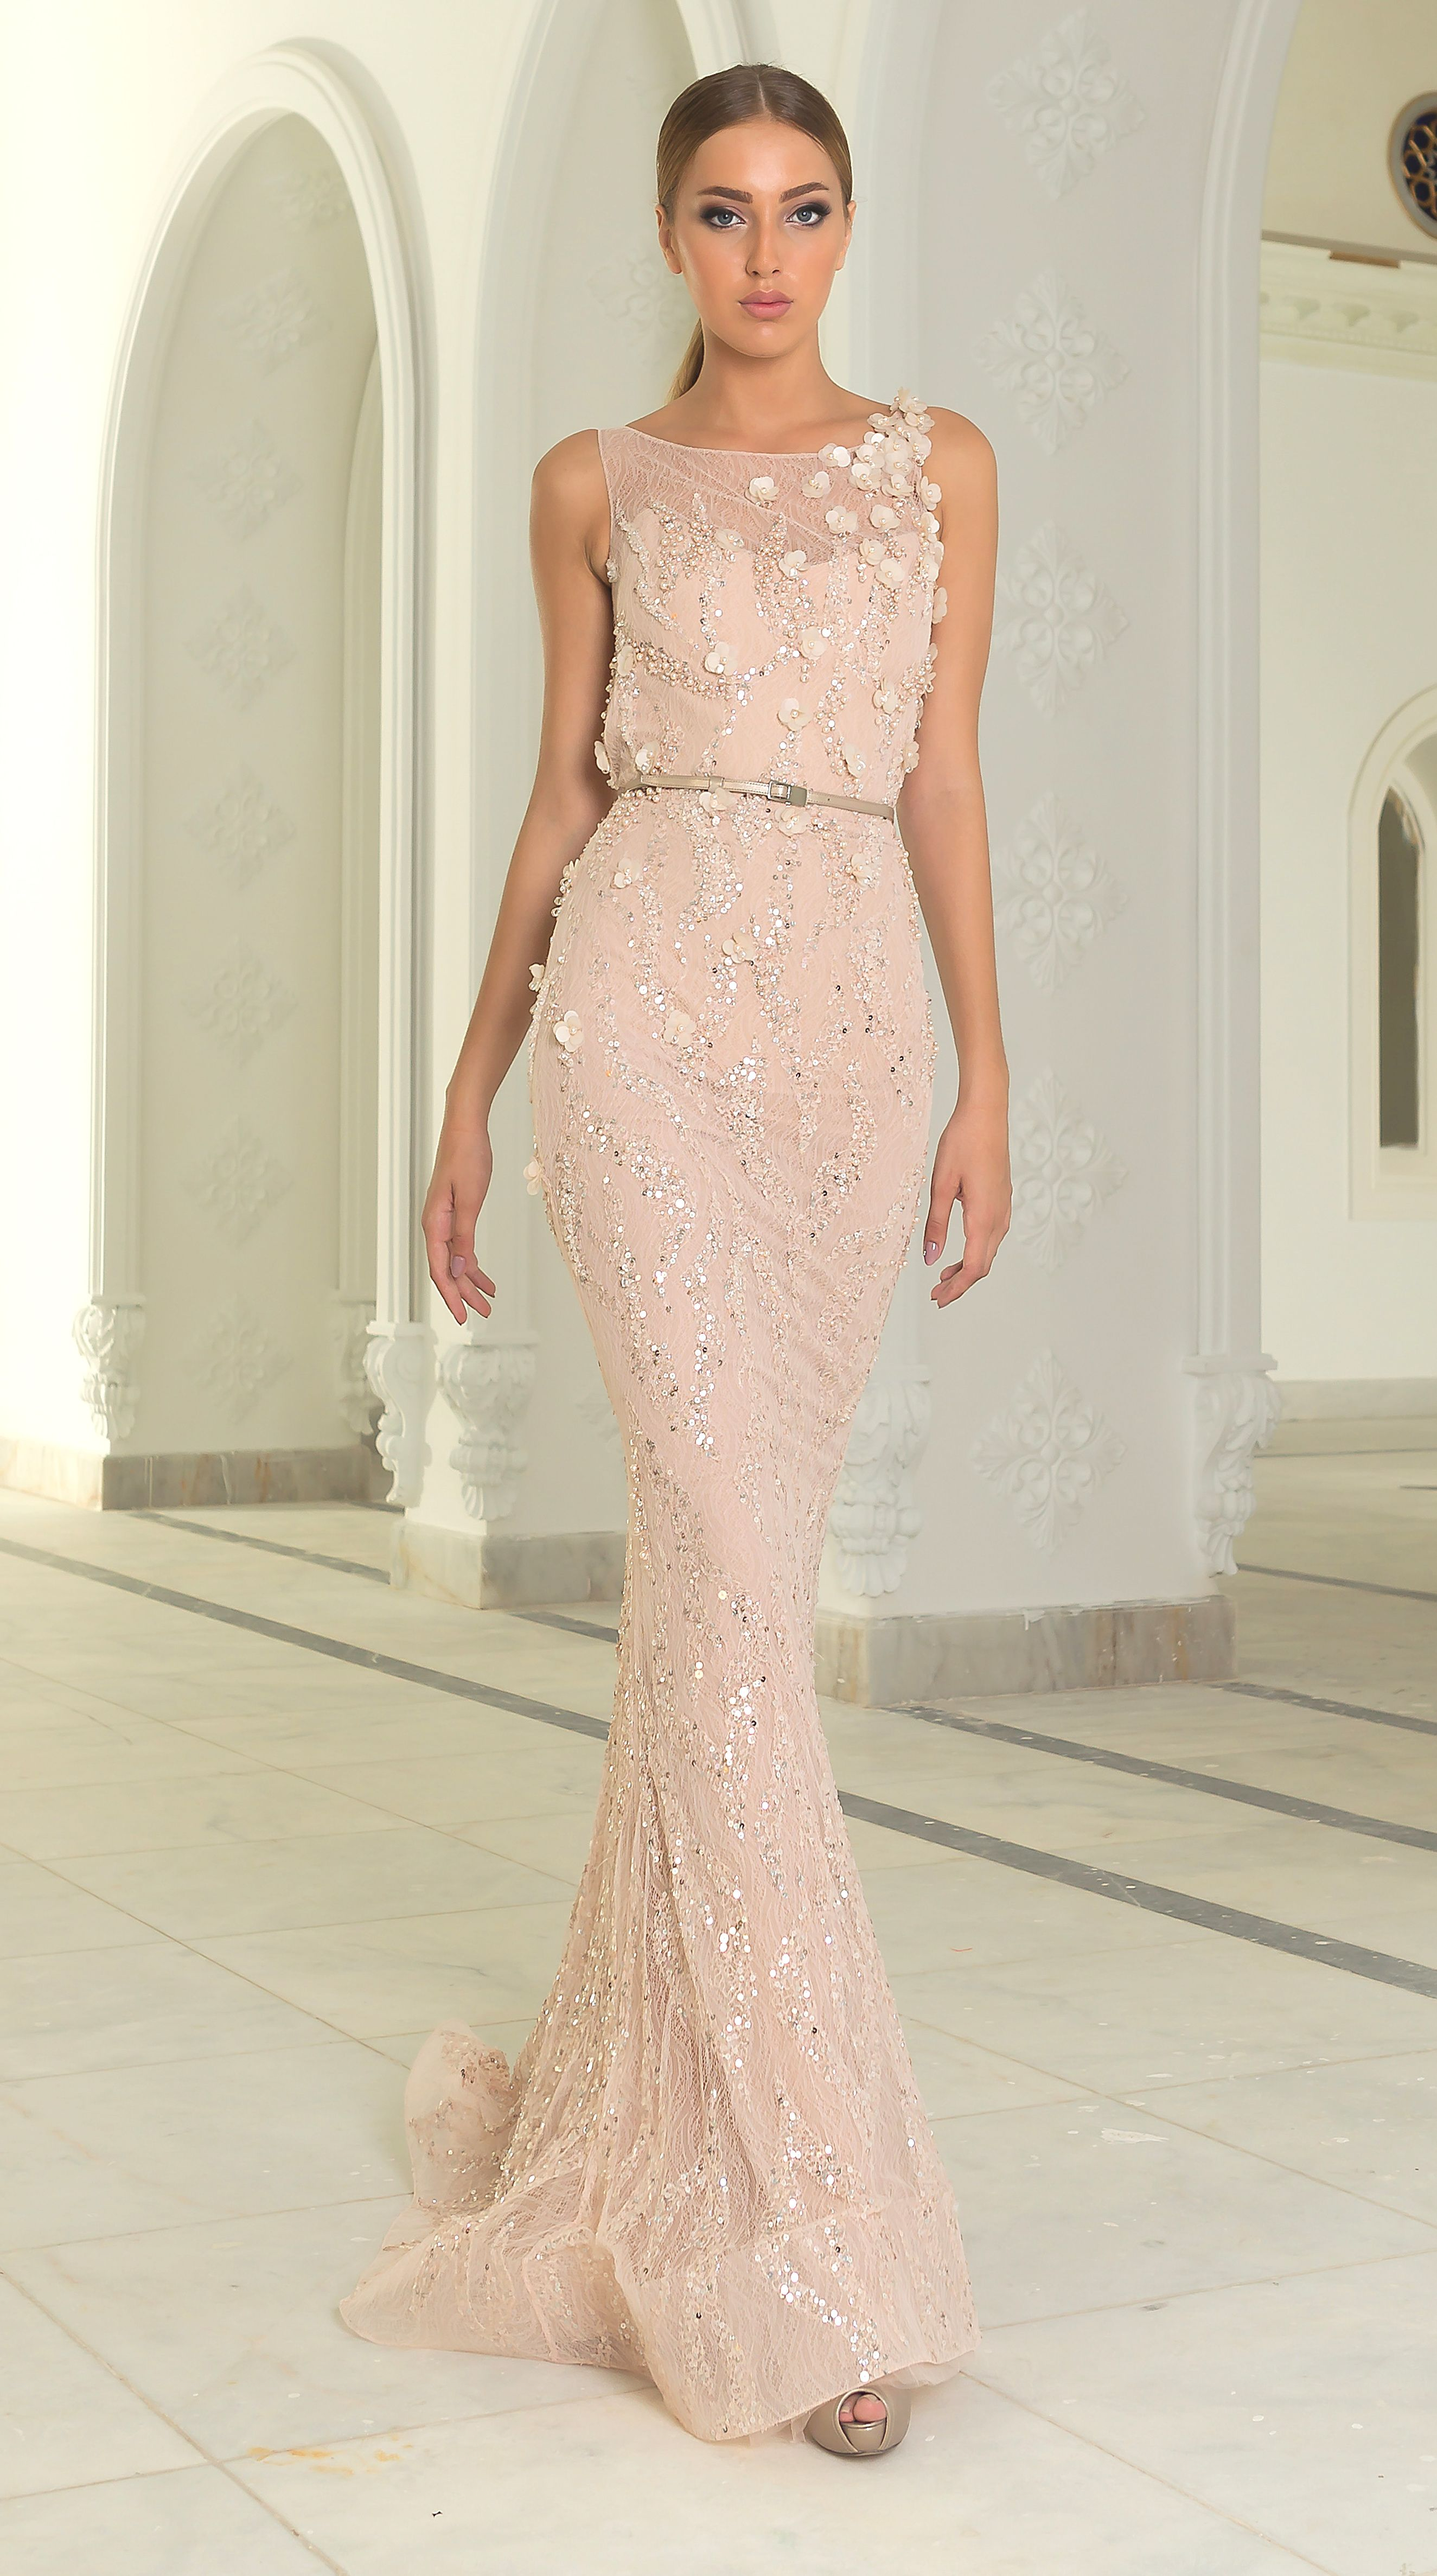 Abed mahfouz fallwinter beaded baby pink evening gown